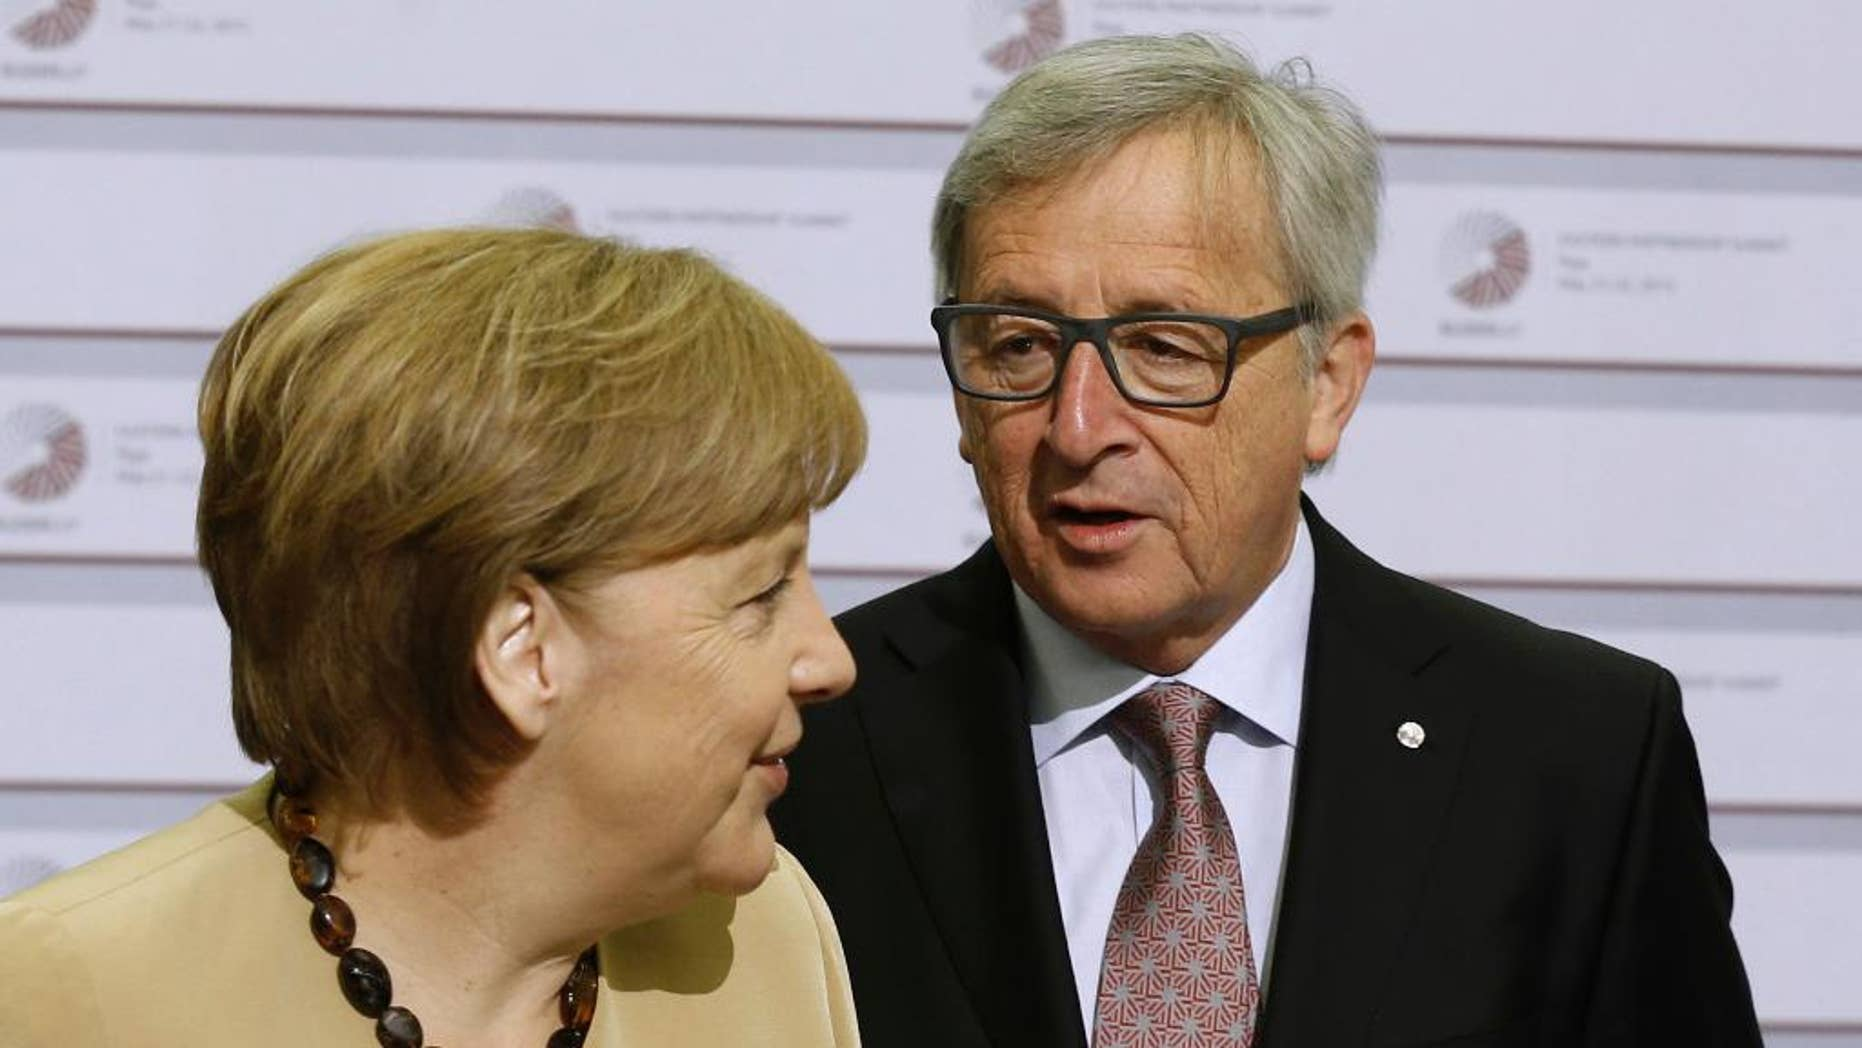 European Commission President Jean-Claude Juncker, right, greets German Chancellor Angela Merkel during arrivals for the Eastern Partnership summit in Riga, Latvia on Friday, May 22, 2015. EU leaders gathered for a second day of meetings with six post-communist nations to discuss various issues, including enlargement, the economy and Ukraine. (AP Photo/Mindaugas Kulbis)